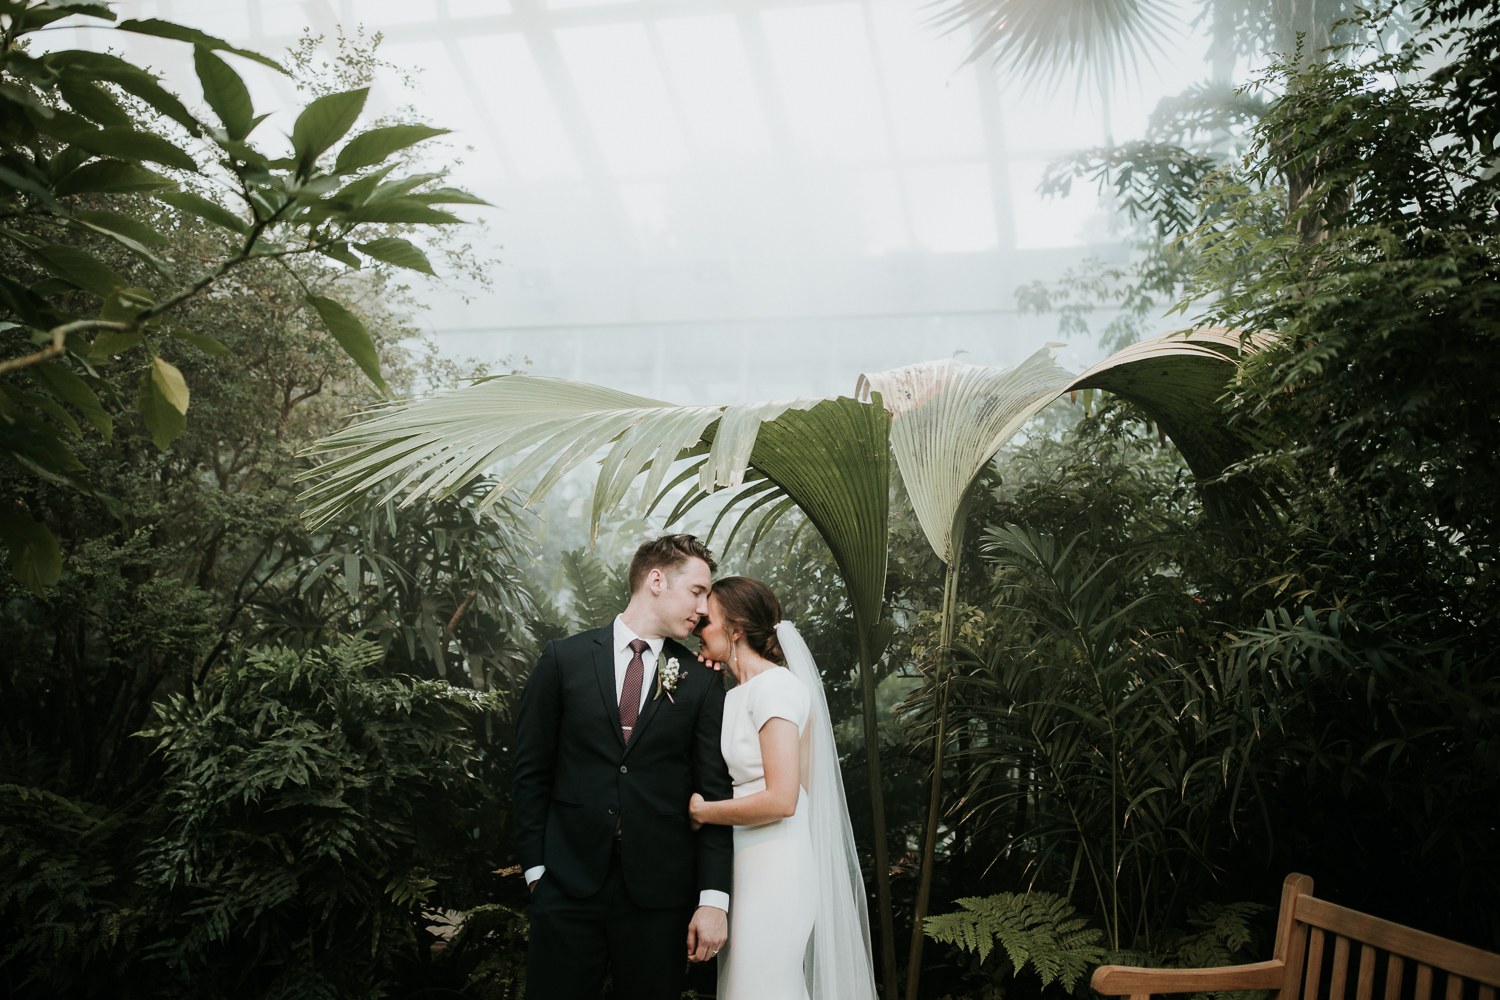 Durham life and science museum, raleigh, wedding planner